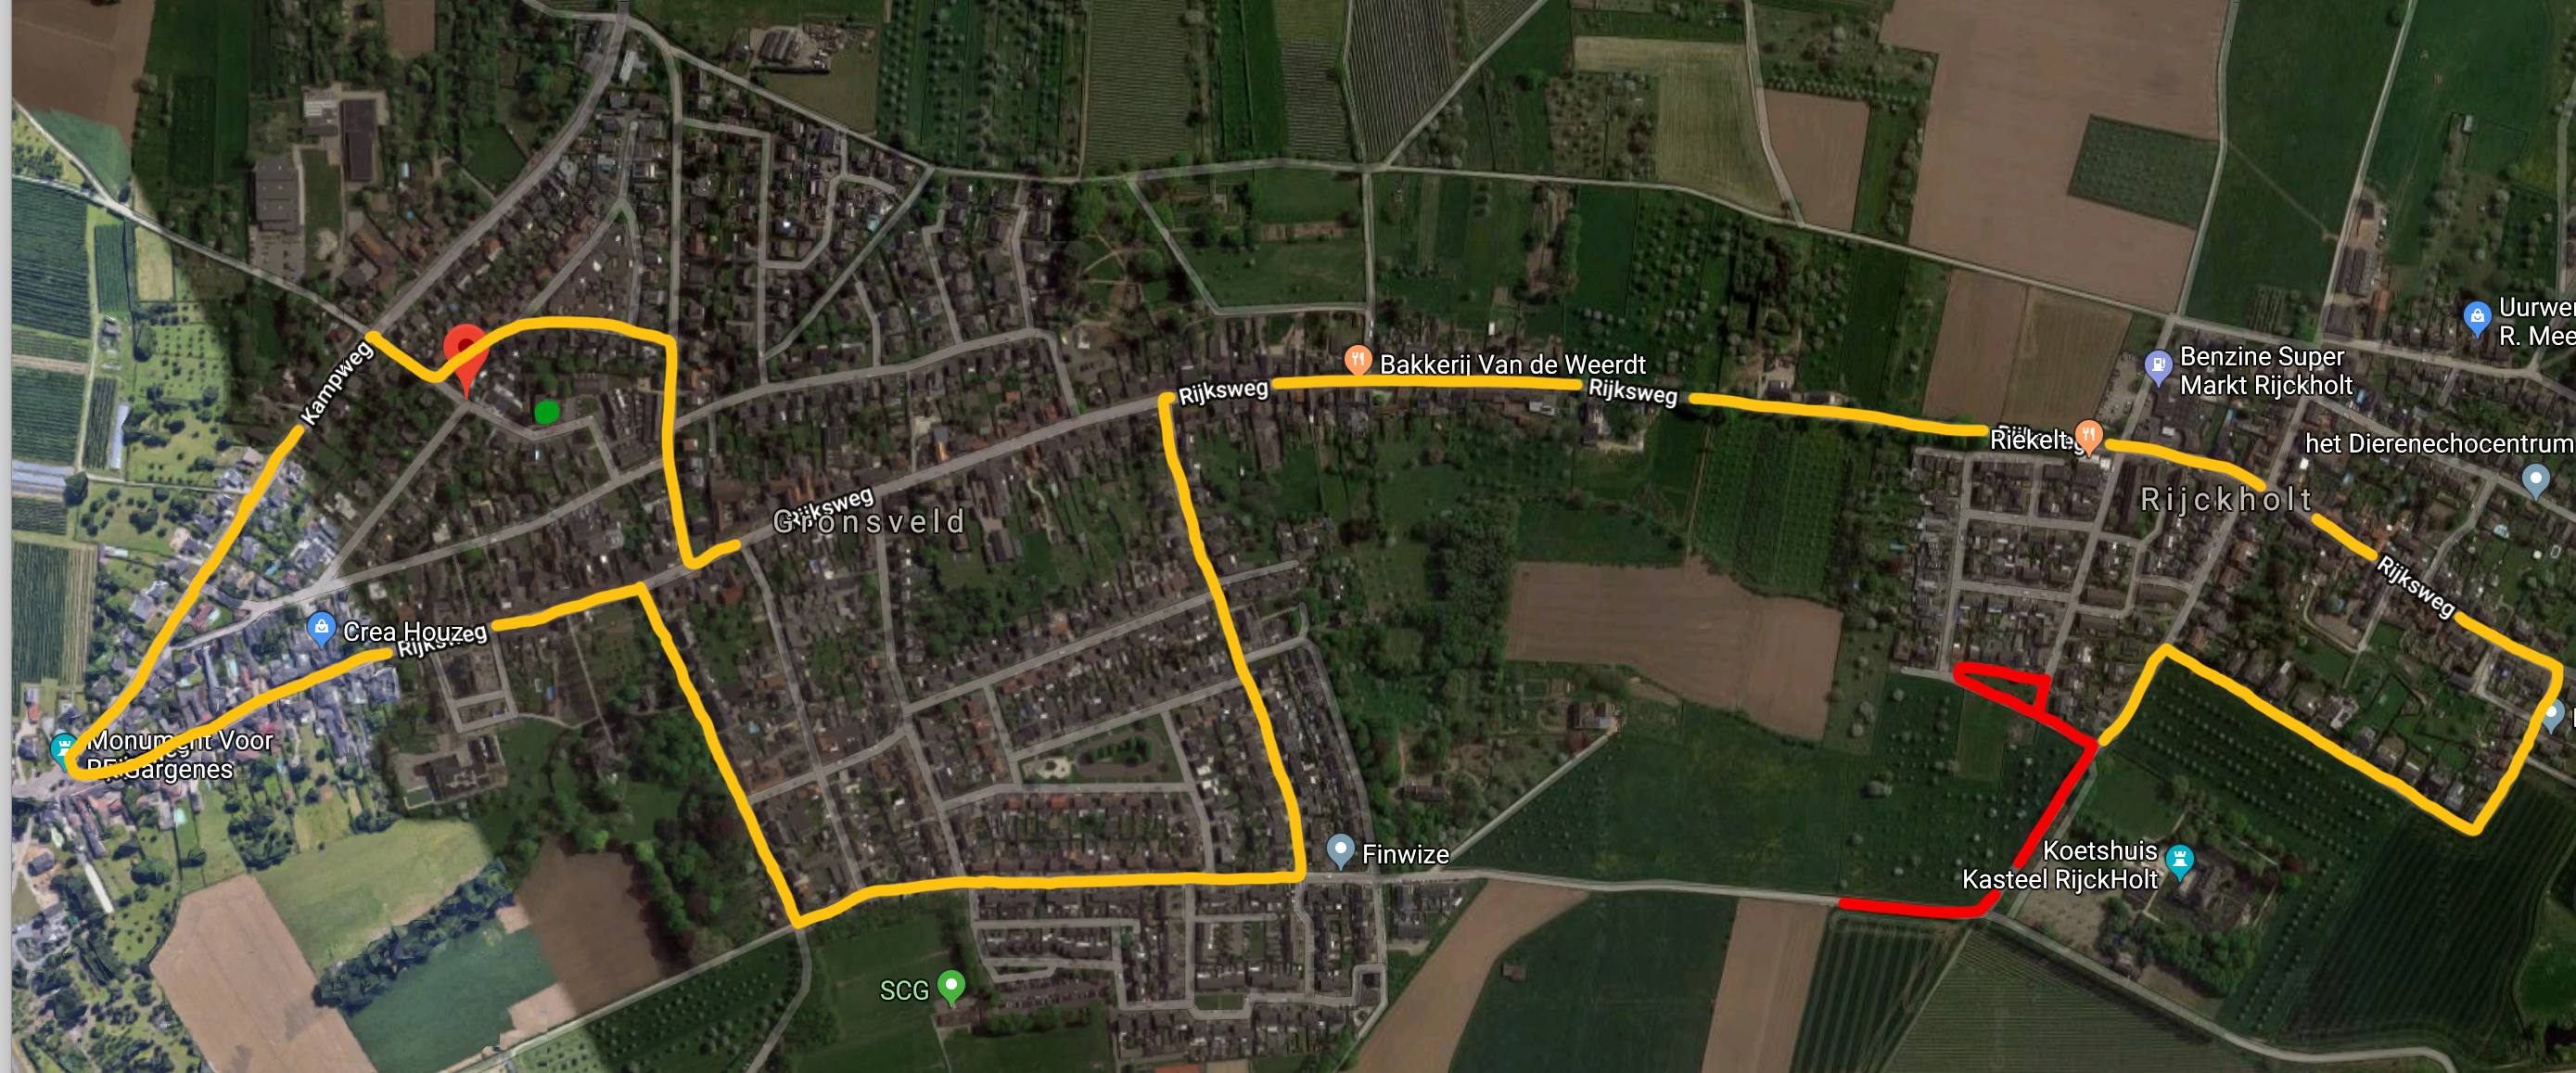 Optocht Route 2019